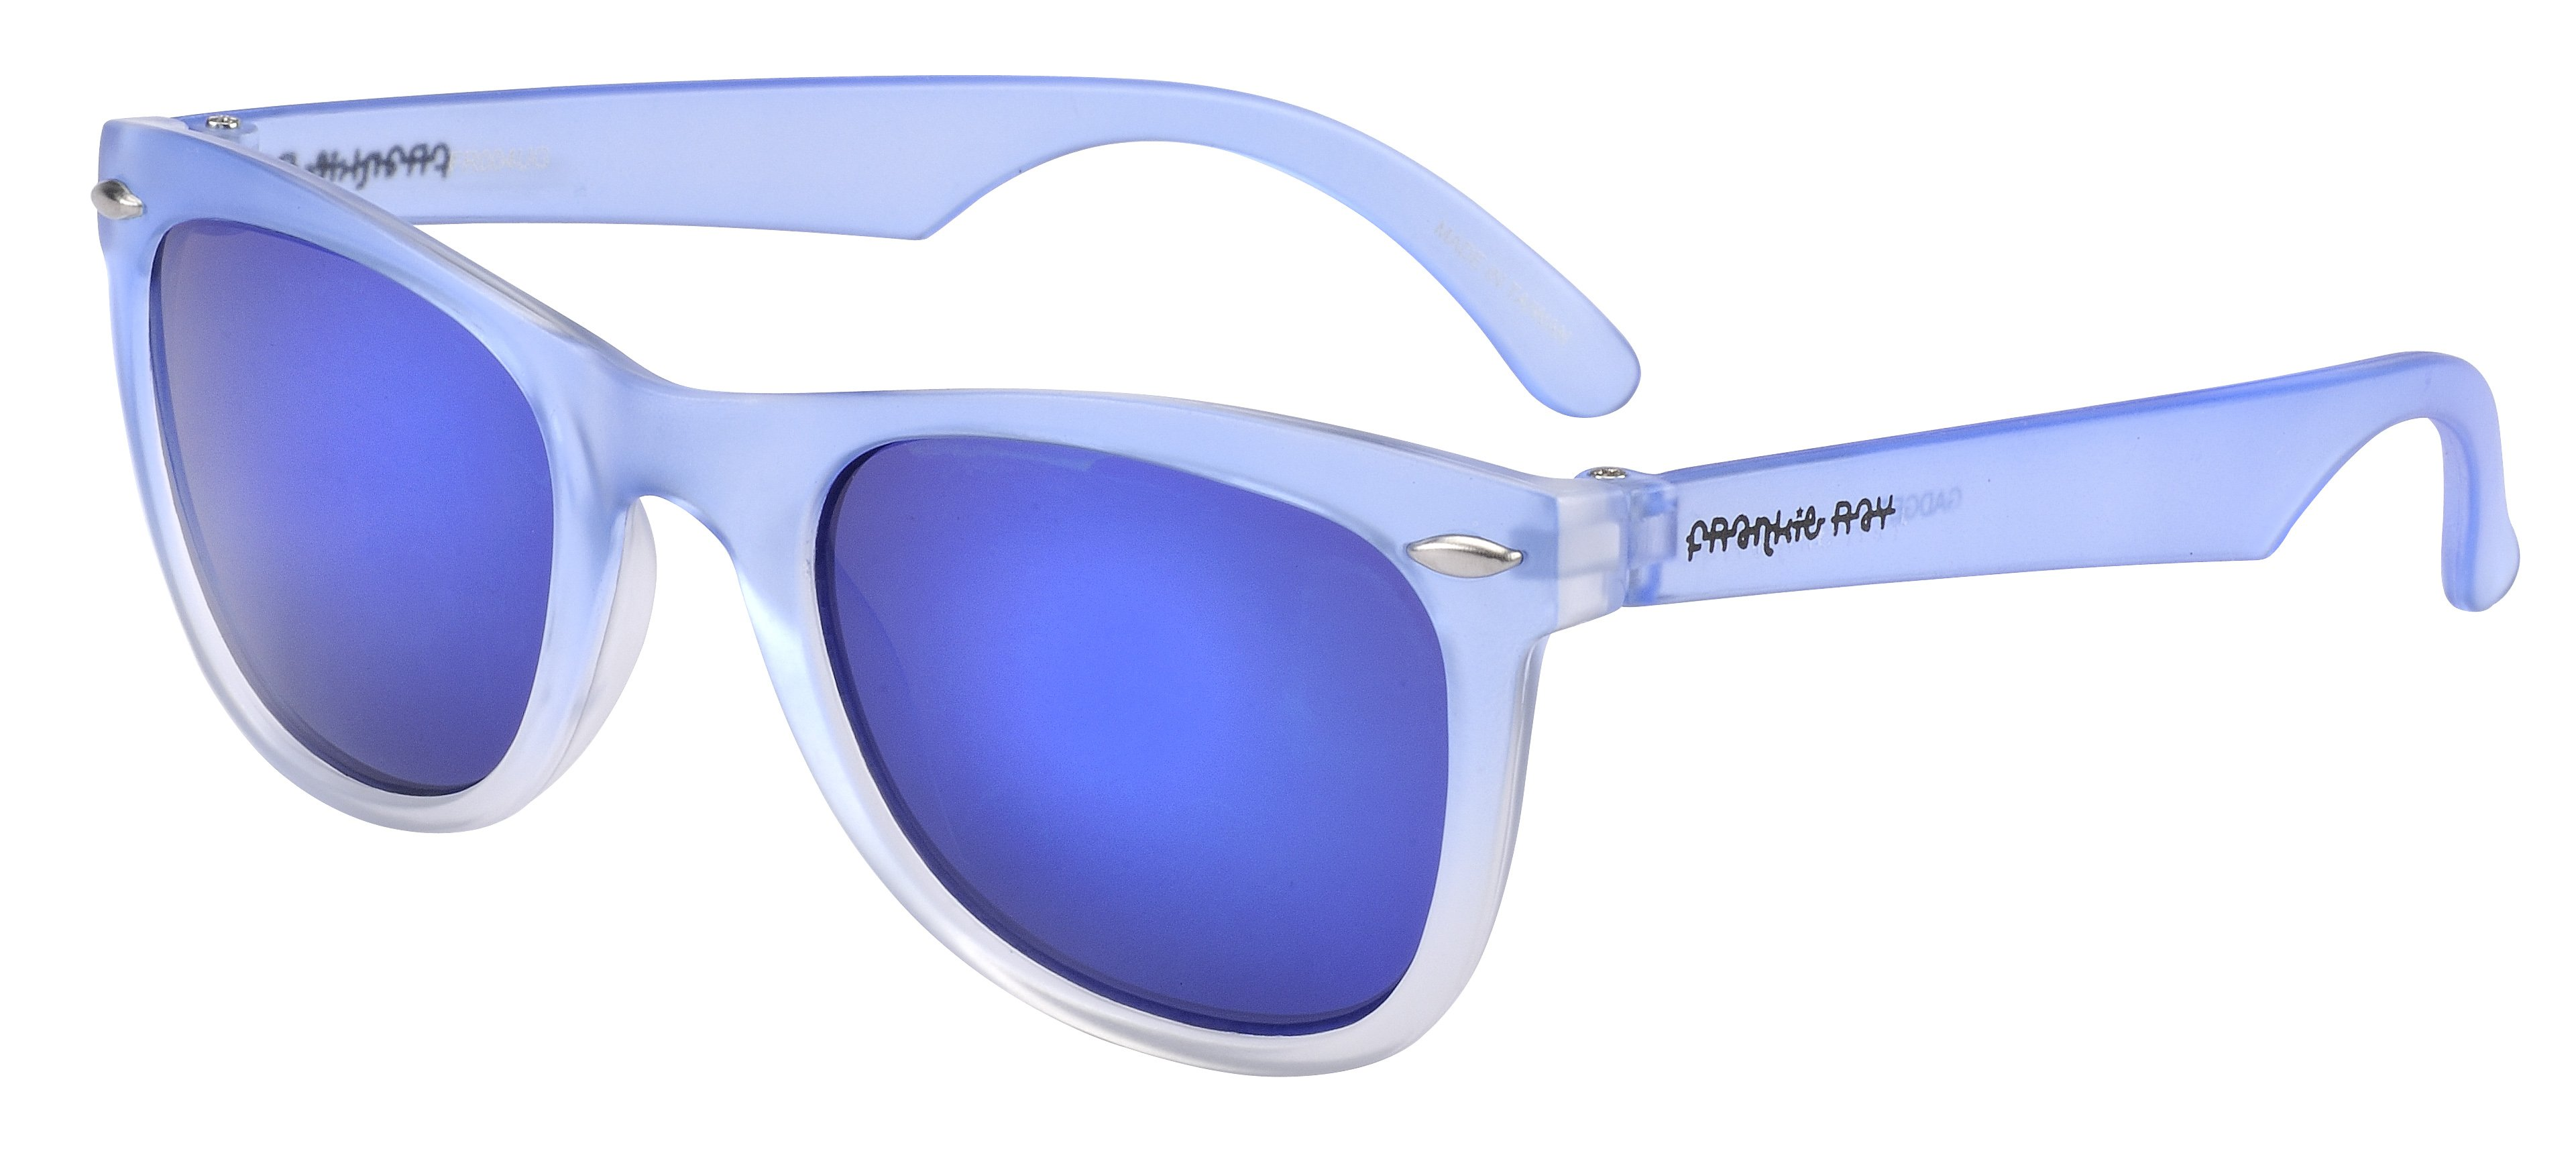 Frankie Ray Sunglasses 3yr+ Gadget Blue Haze